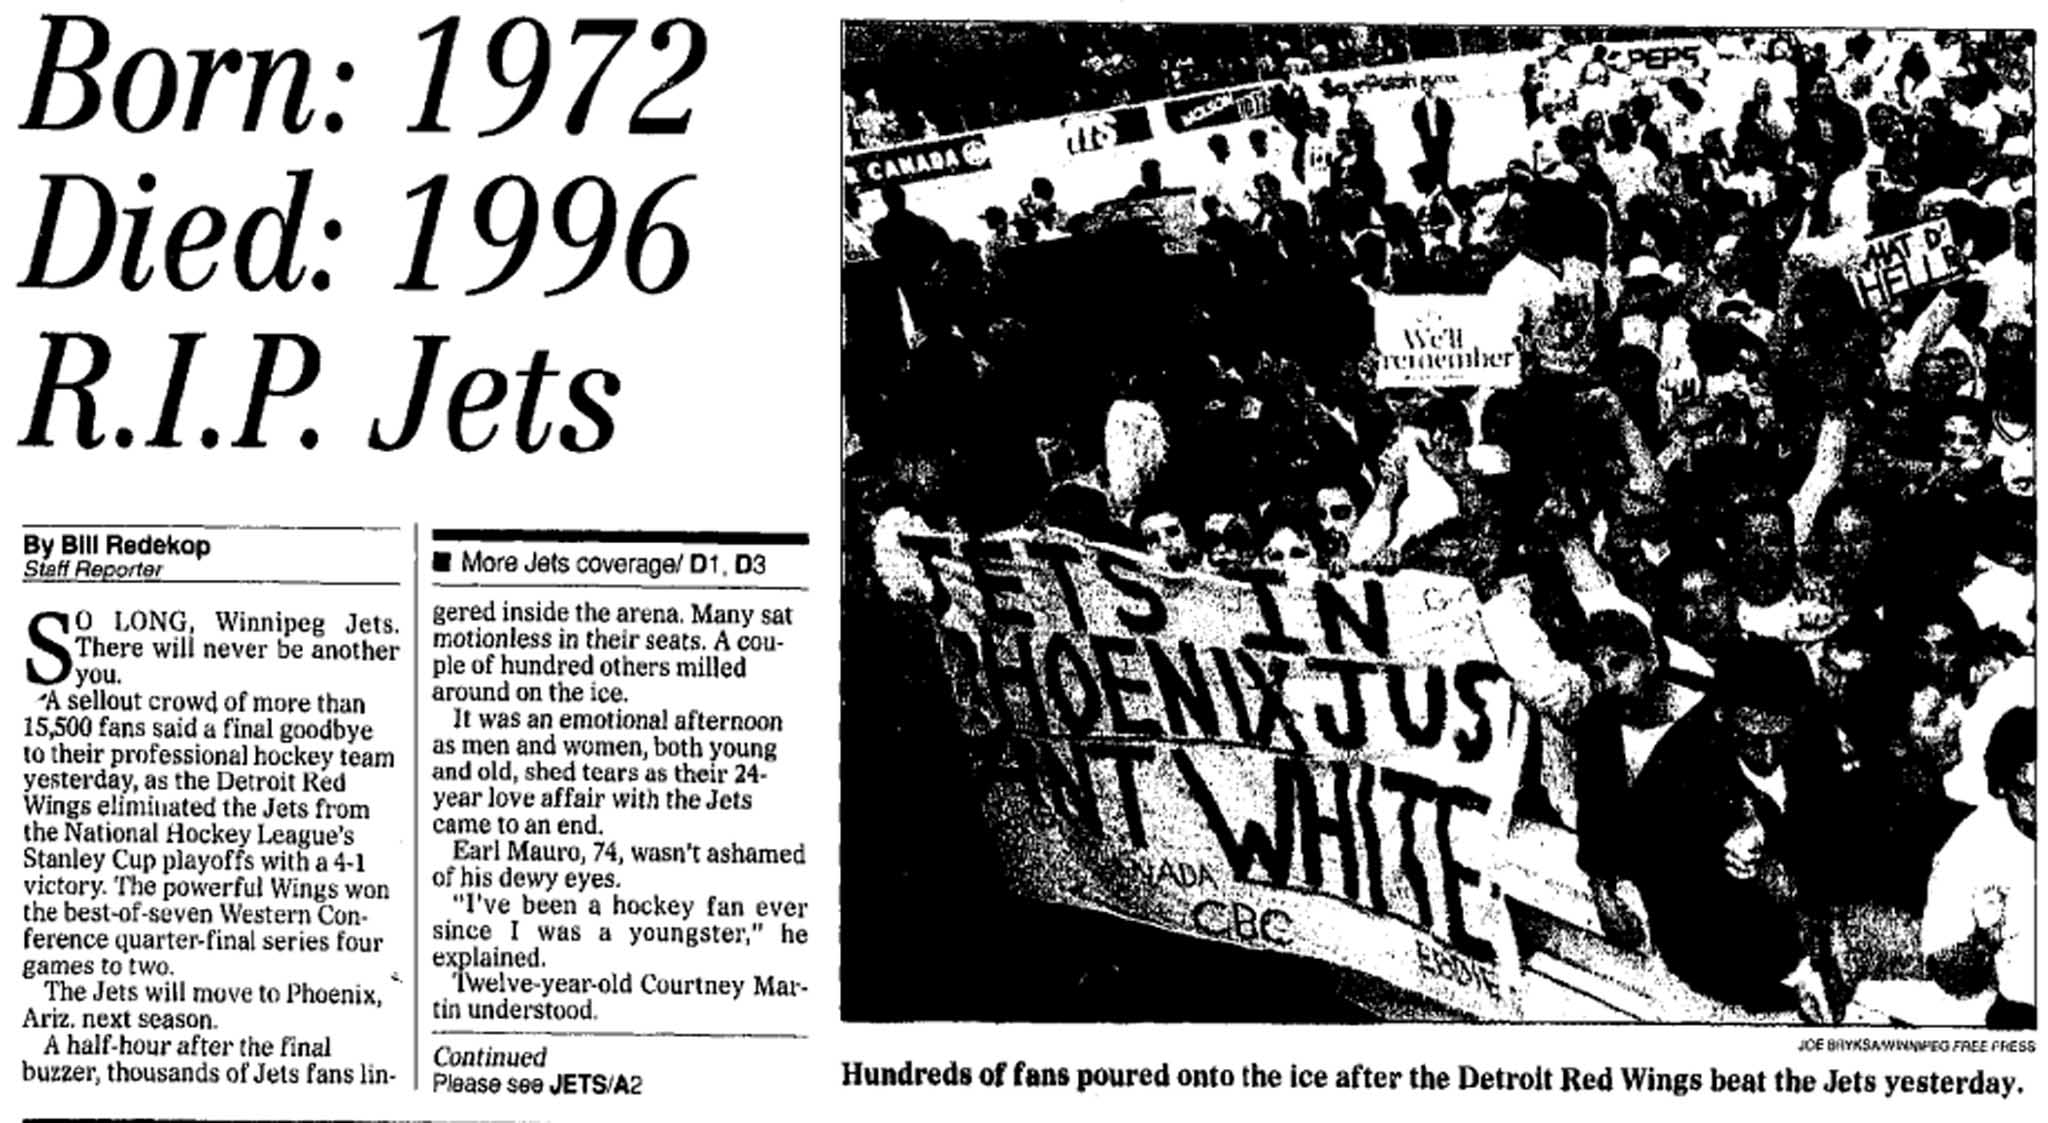 The story on the front page of the Winnipeg Free Press on April 29, 1996.